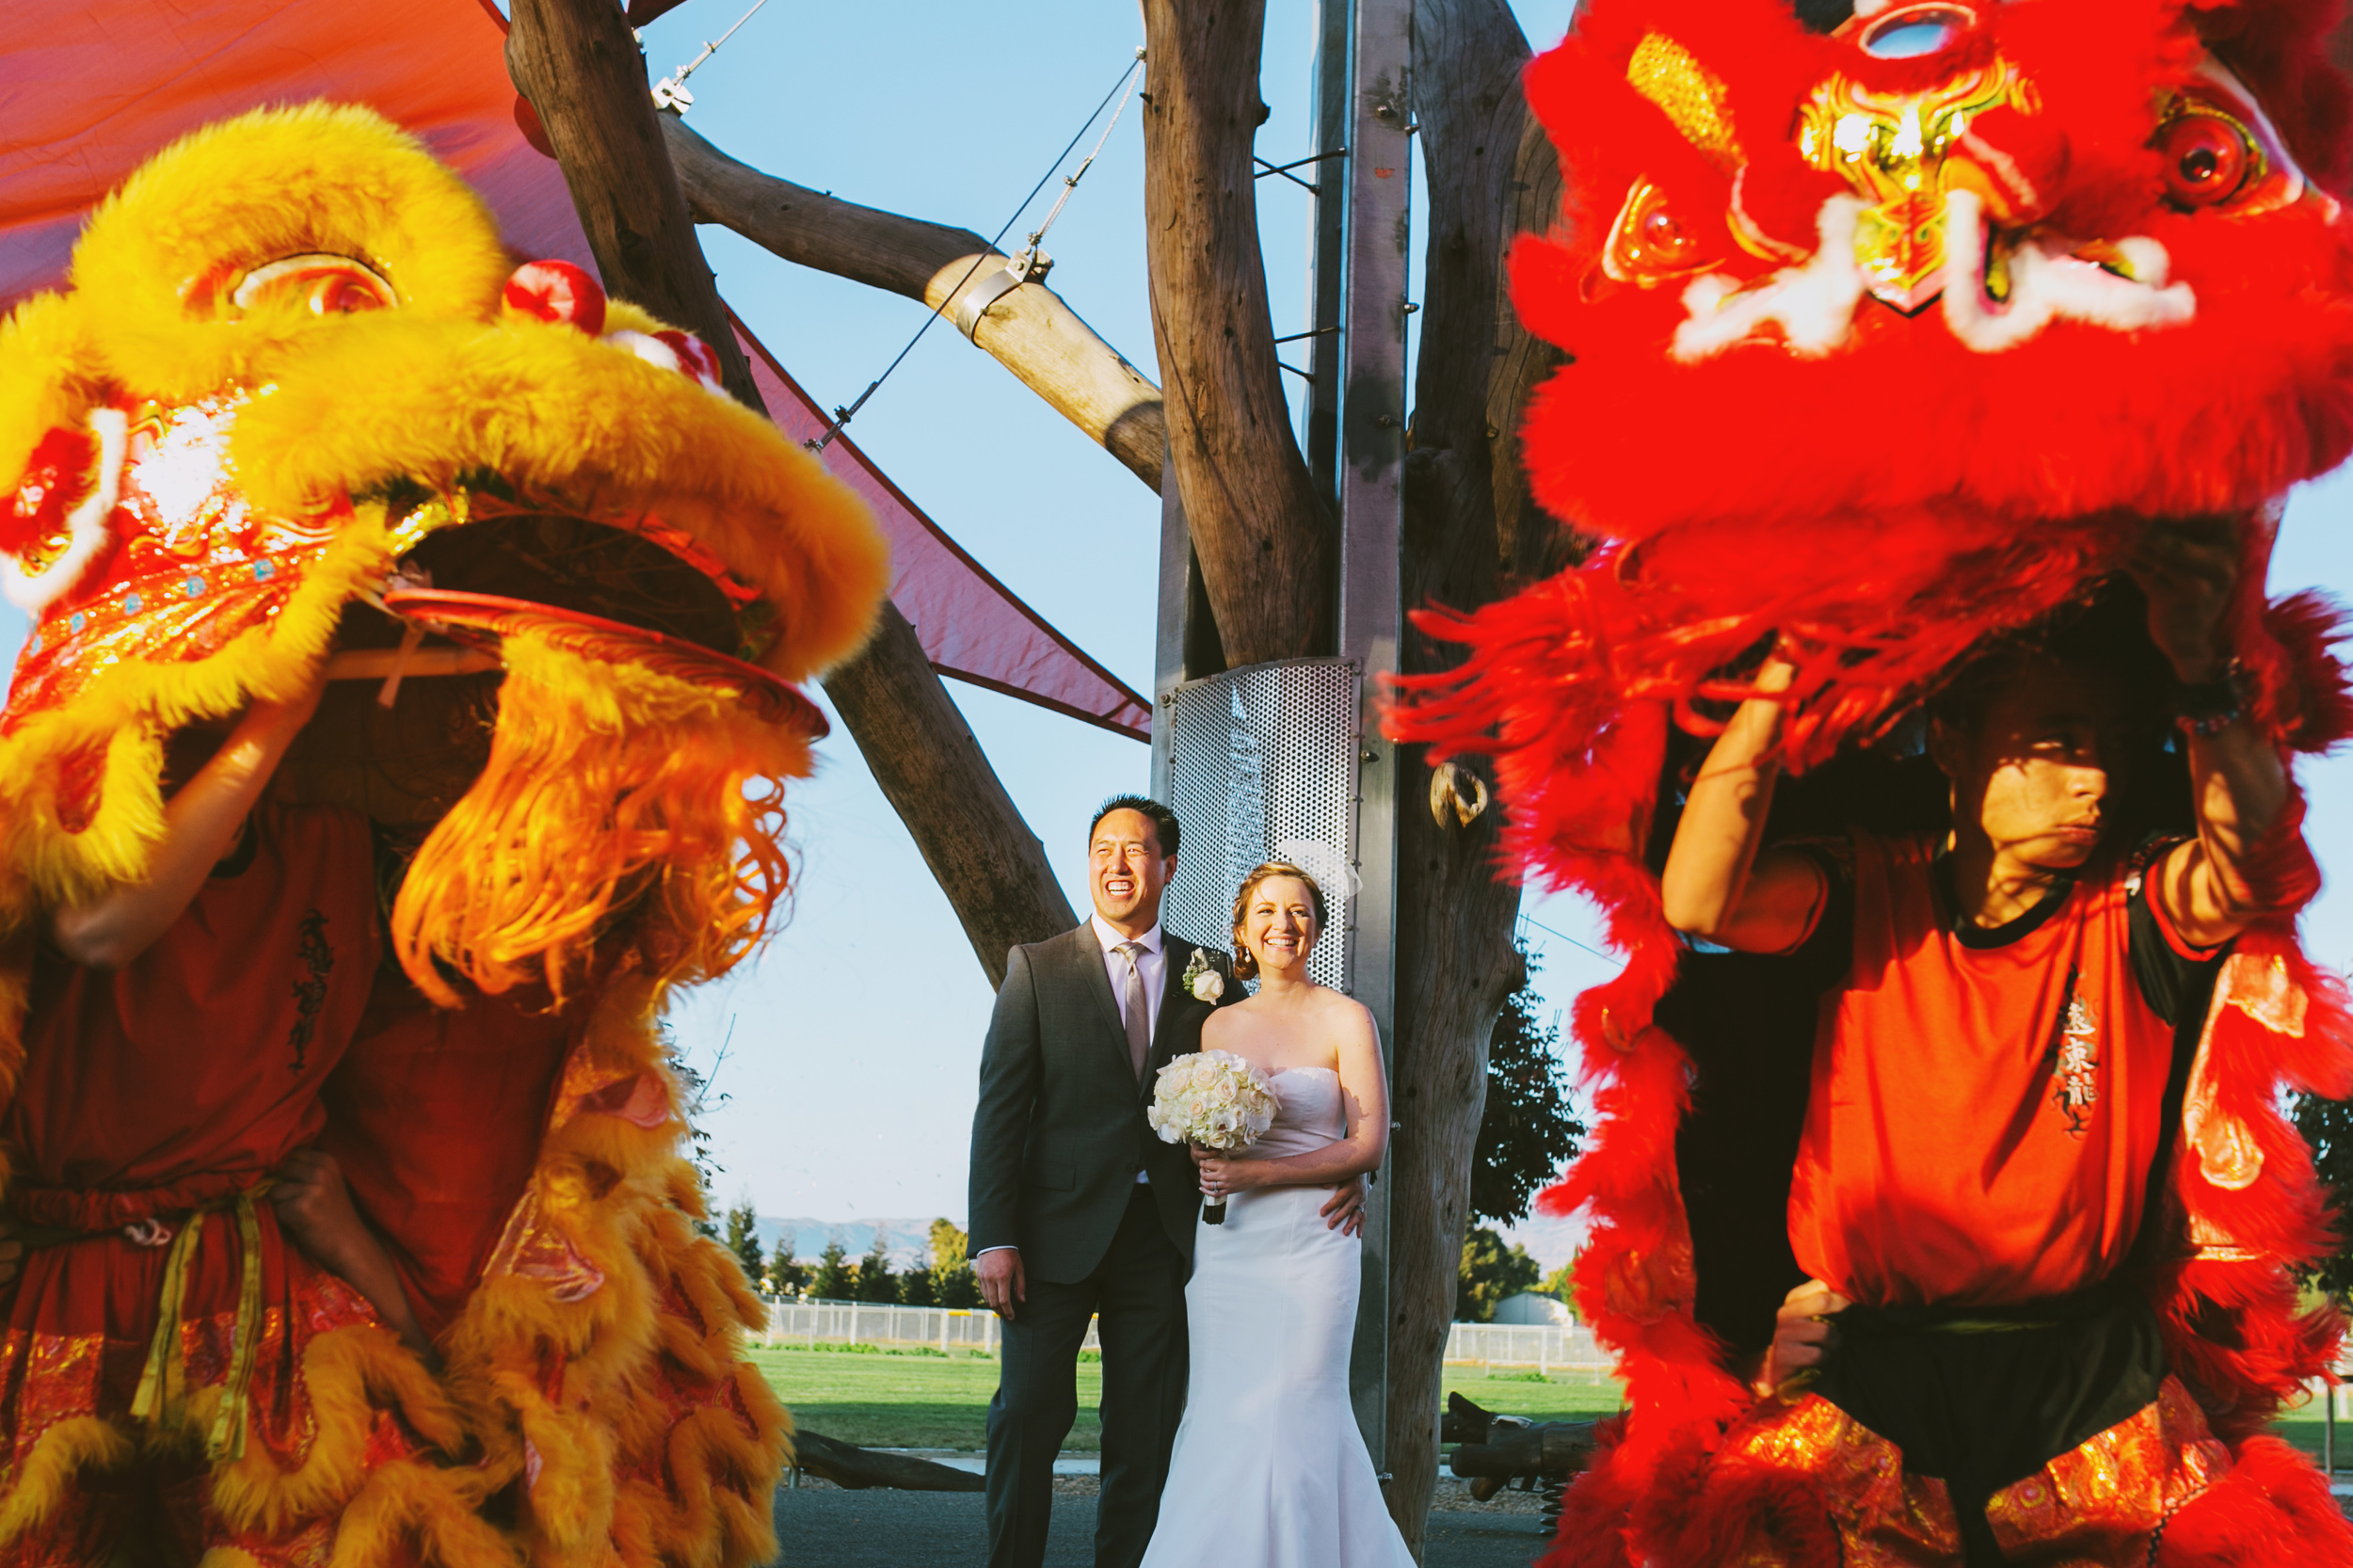 Seven_Trees_Community_Center_San_Jose_Wedding-14.JPG